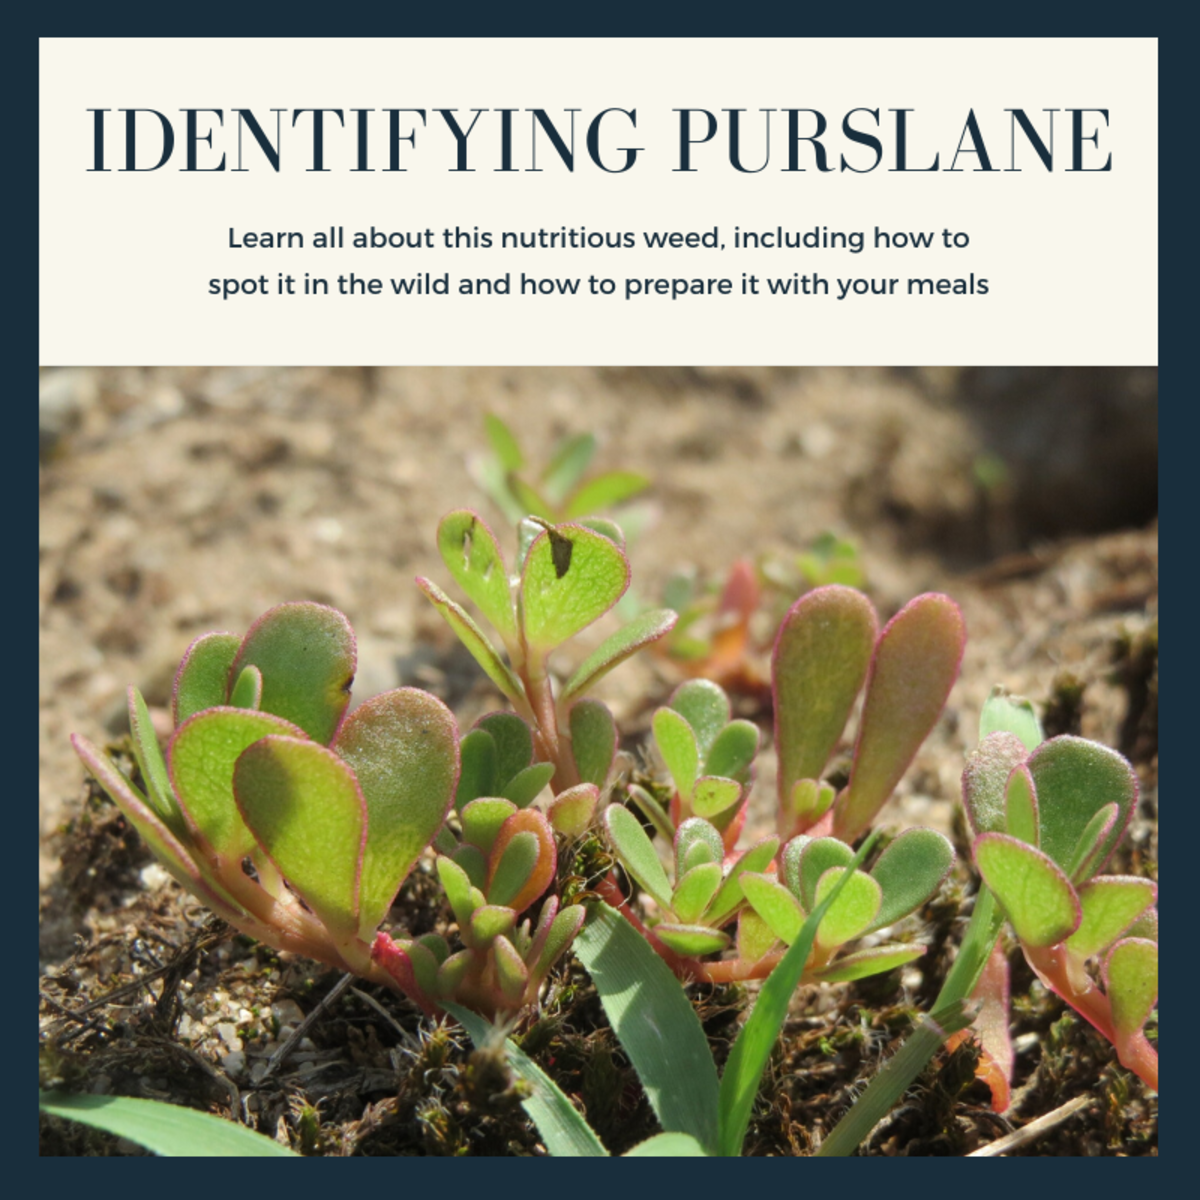 This article will help you identify purslane and will also provide some recipes for how best to cook this edible wild plant.